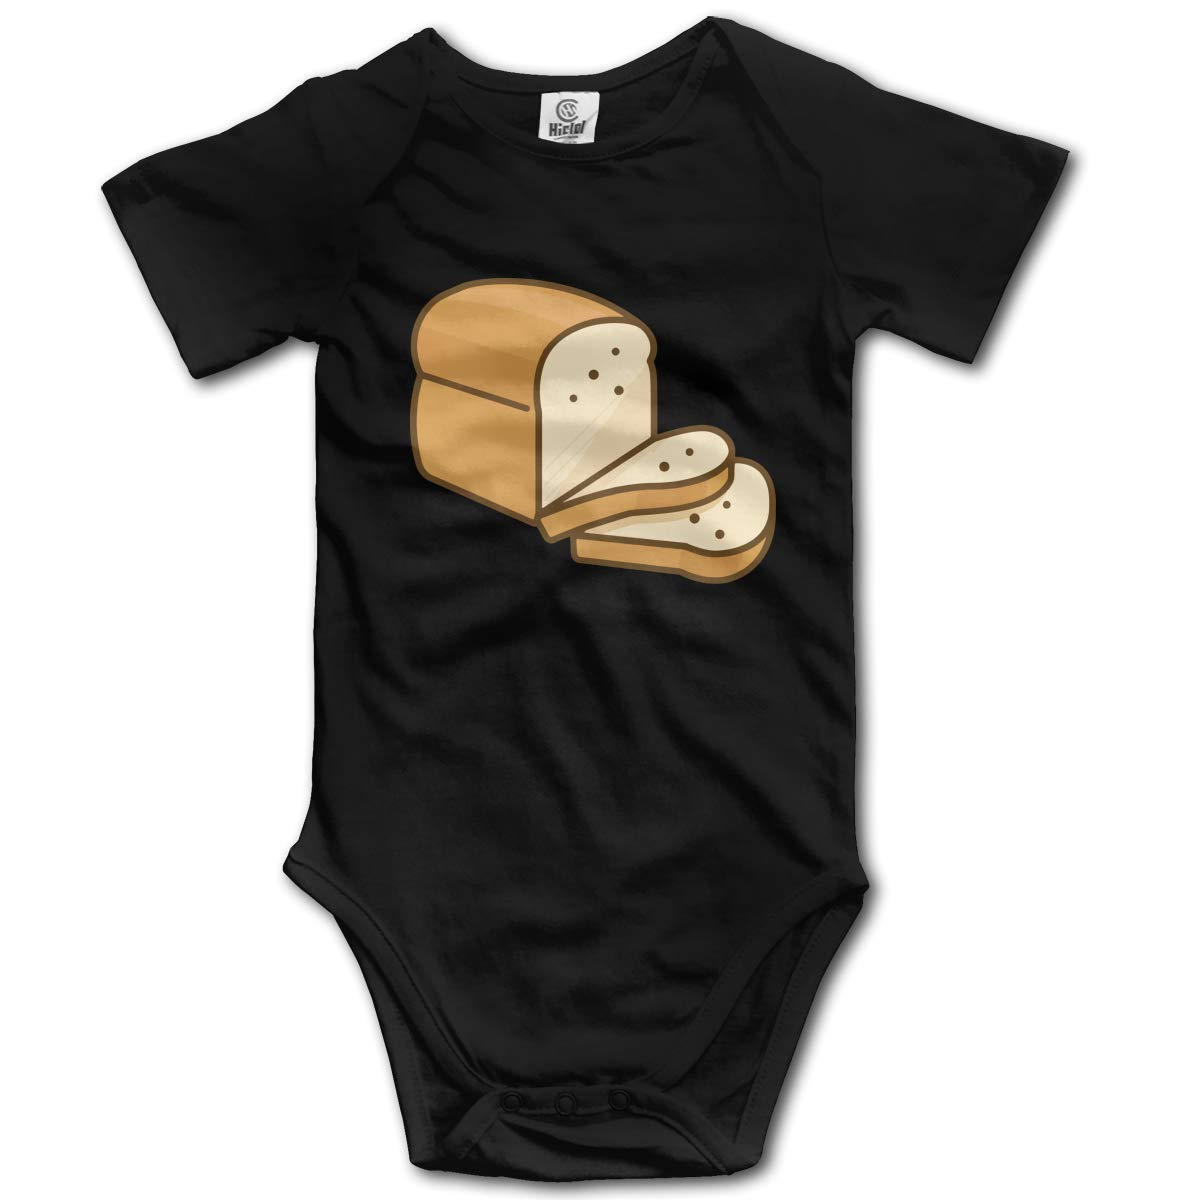 Cartoon Bread Printed Infant Baby Boy Girl Short Sleeve Bodysuits Coverall Jumpsuit